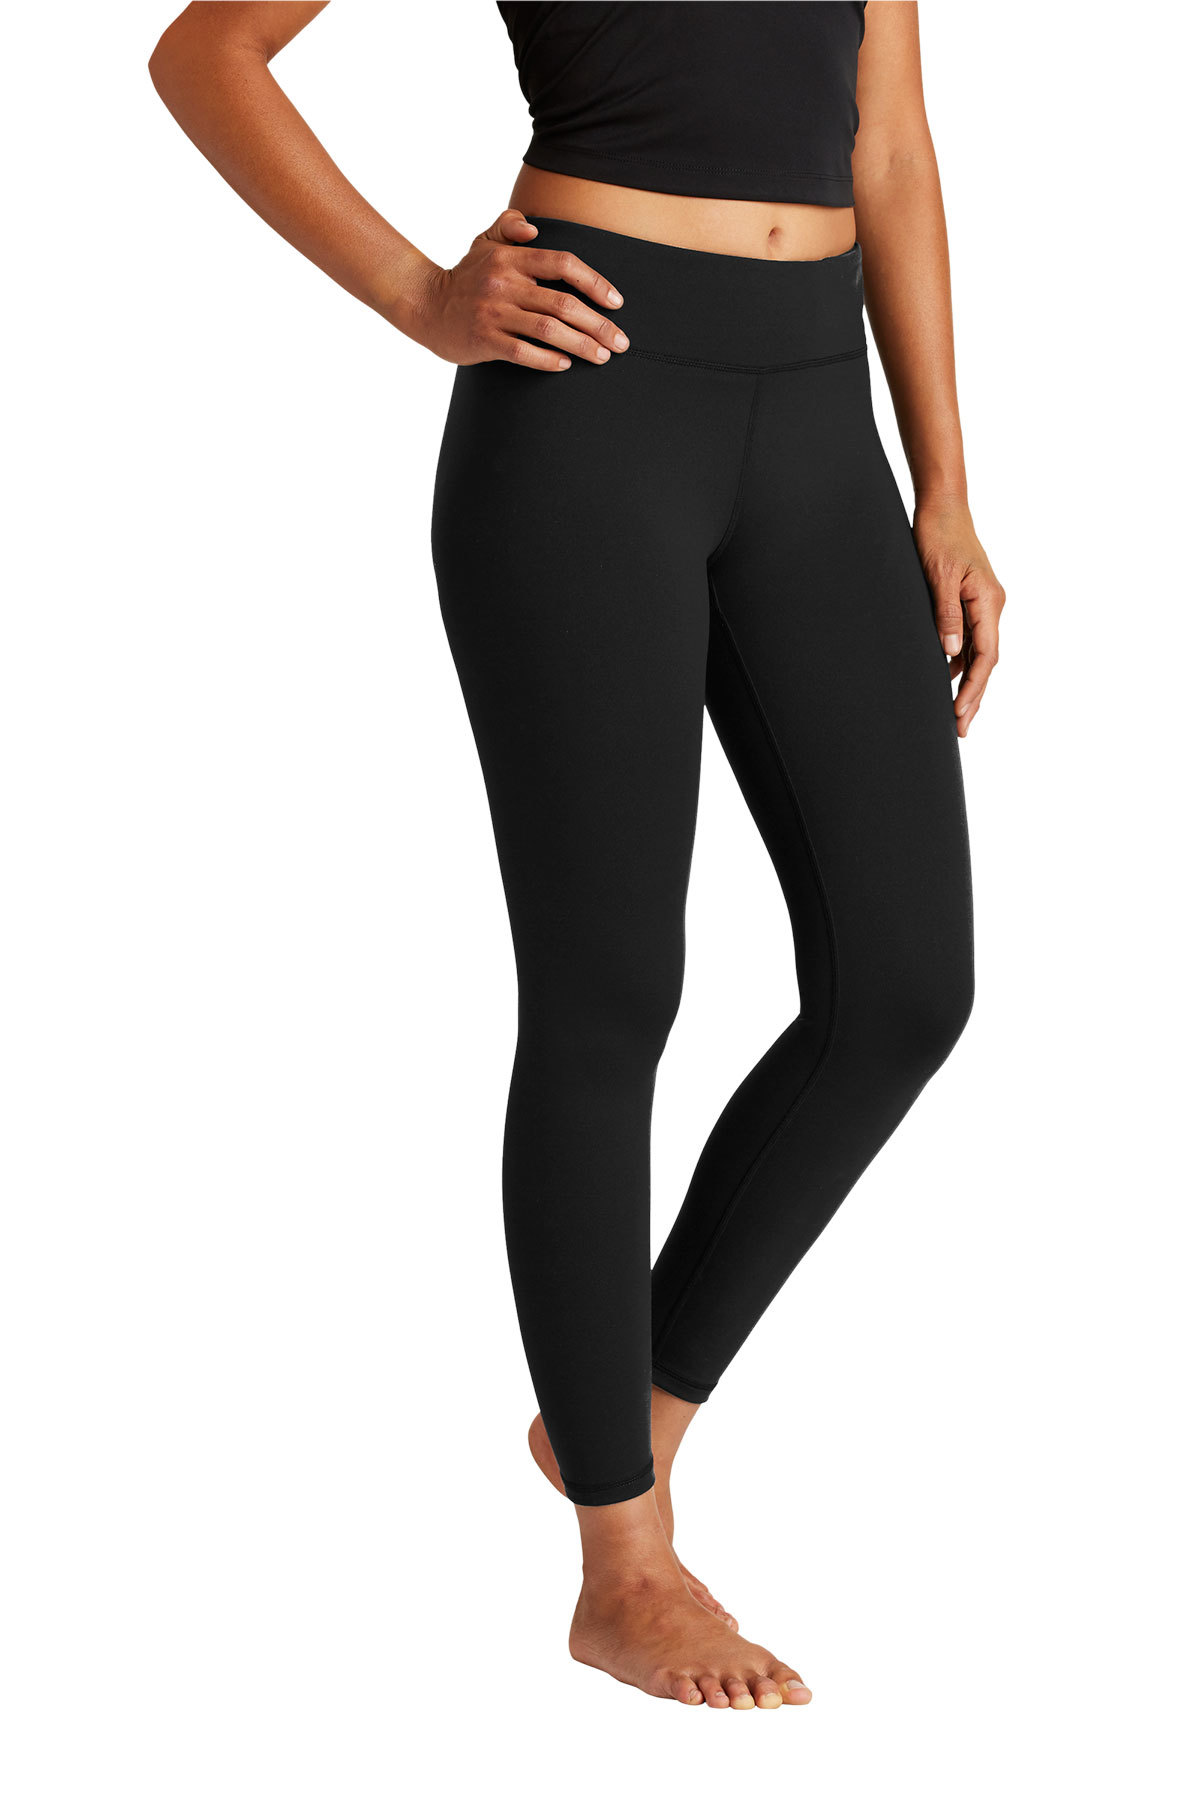 Sport Tek Ladies 7 8 Legging Activewear Sanmar It's the yoga pants season…and these ladies are bringing the heat (50 photos). sport tek ladies 7 8 legging activewear sanmar